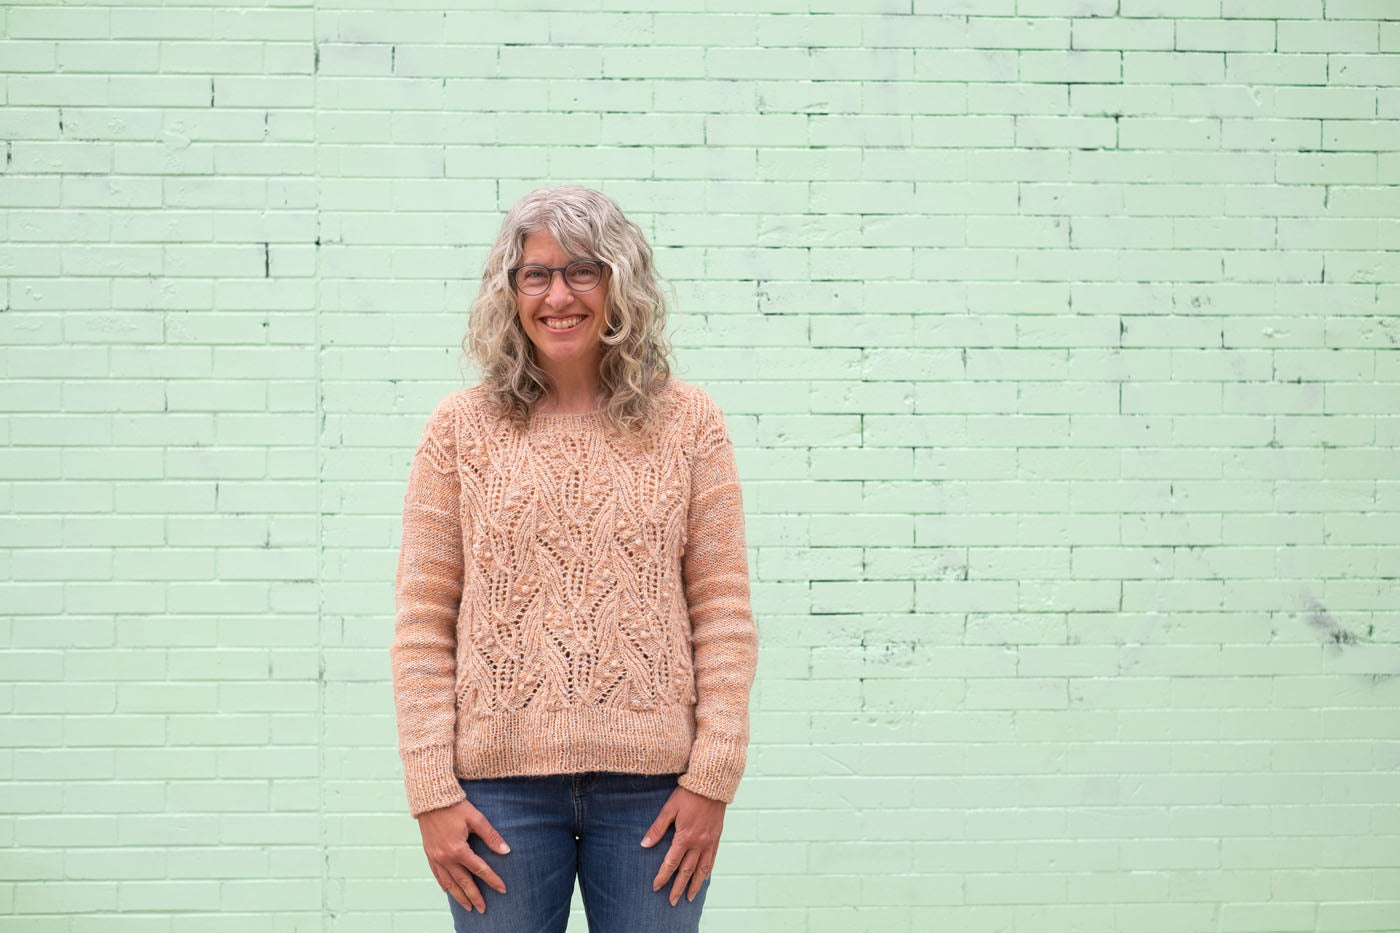 Jaime stands in front of a mint green painted brick wall, wearing her newly finished hand-knit Atlantica sweater. The textured sweater is the pale peachy color of spring blossoms, and Jaime smiles.